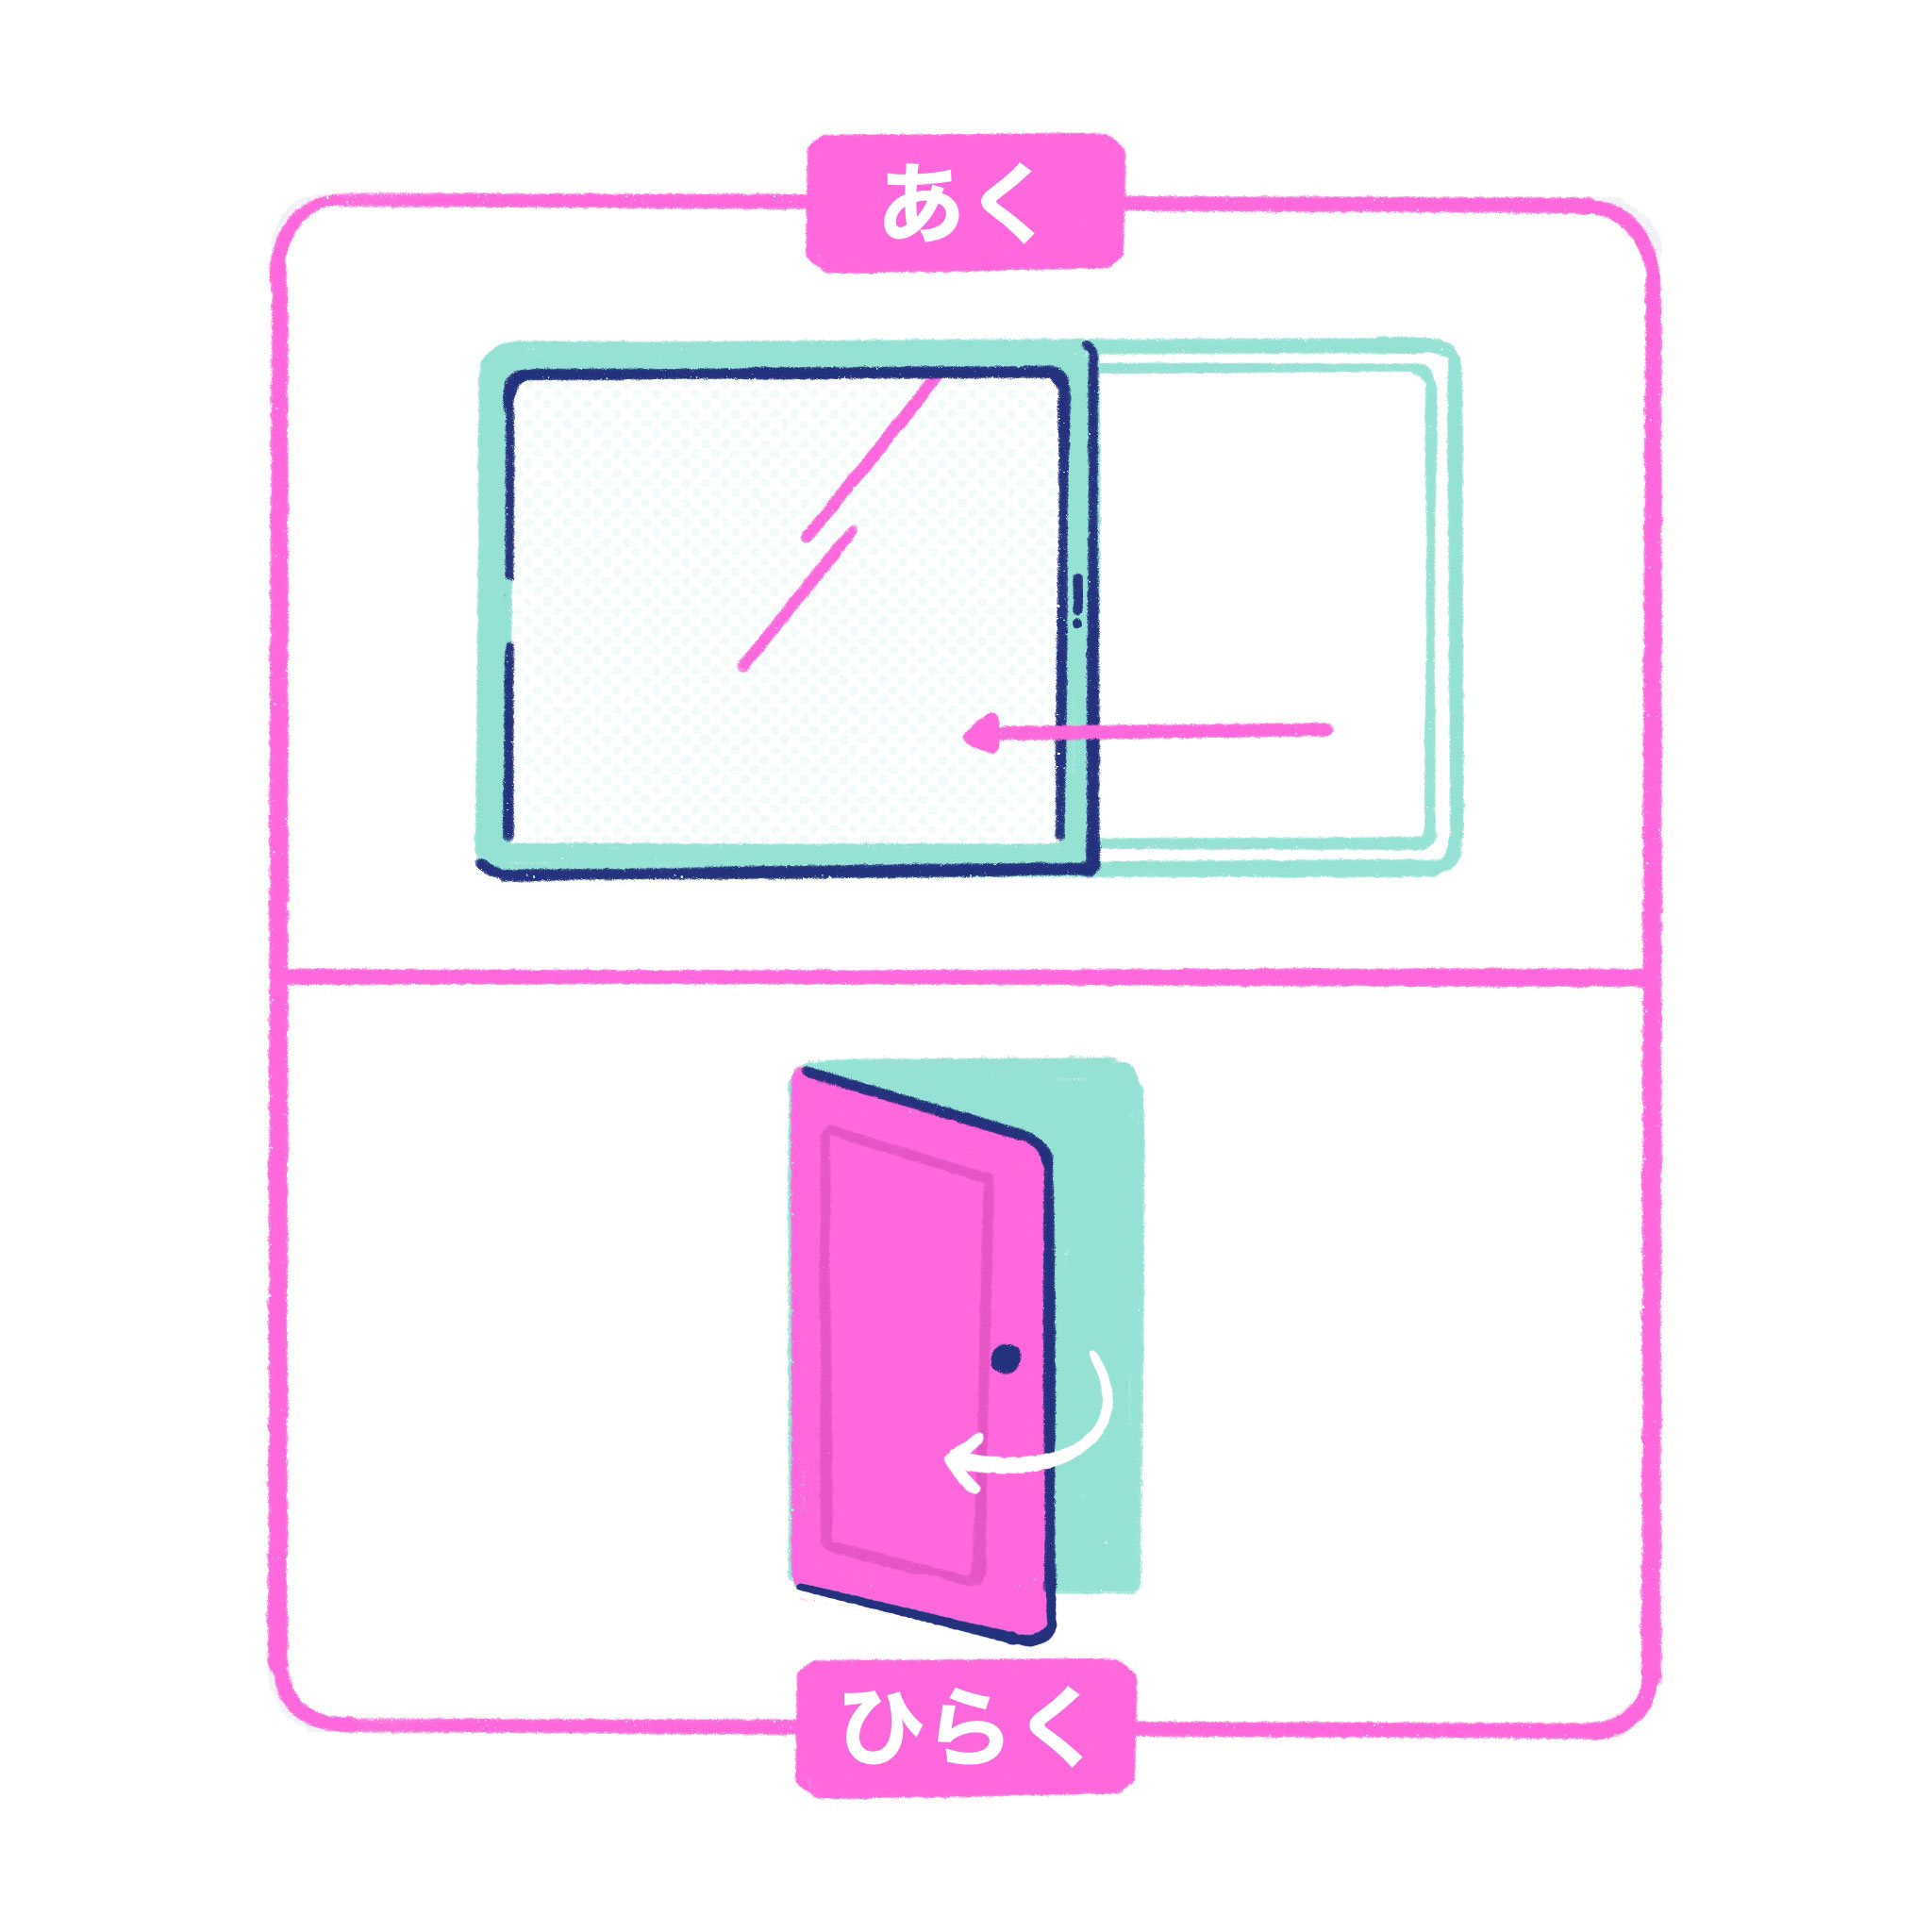 a sliding window for あく and an opening door for ひらく